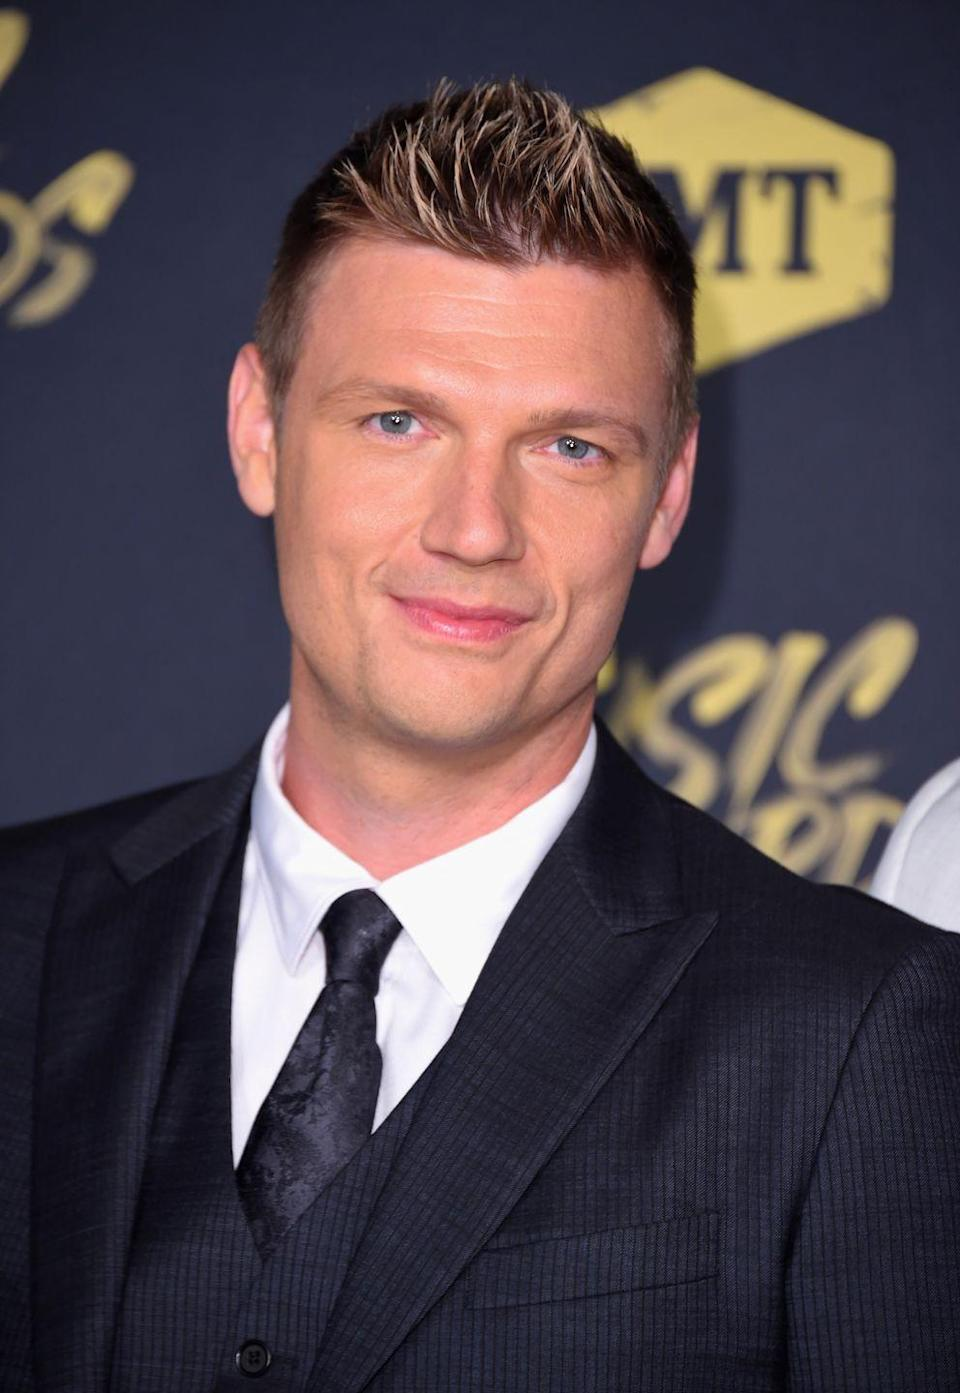 <p>Not only is Nick still rocking the '90s hair gel, but he's also still touring and releasing new(ish) music with the Backstreet Boys. Some! Things! Never! Change!</p>